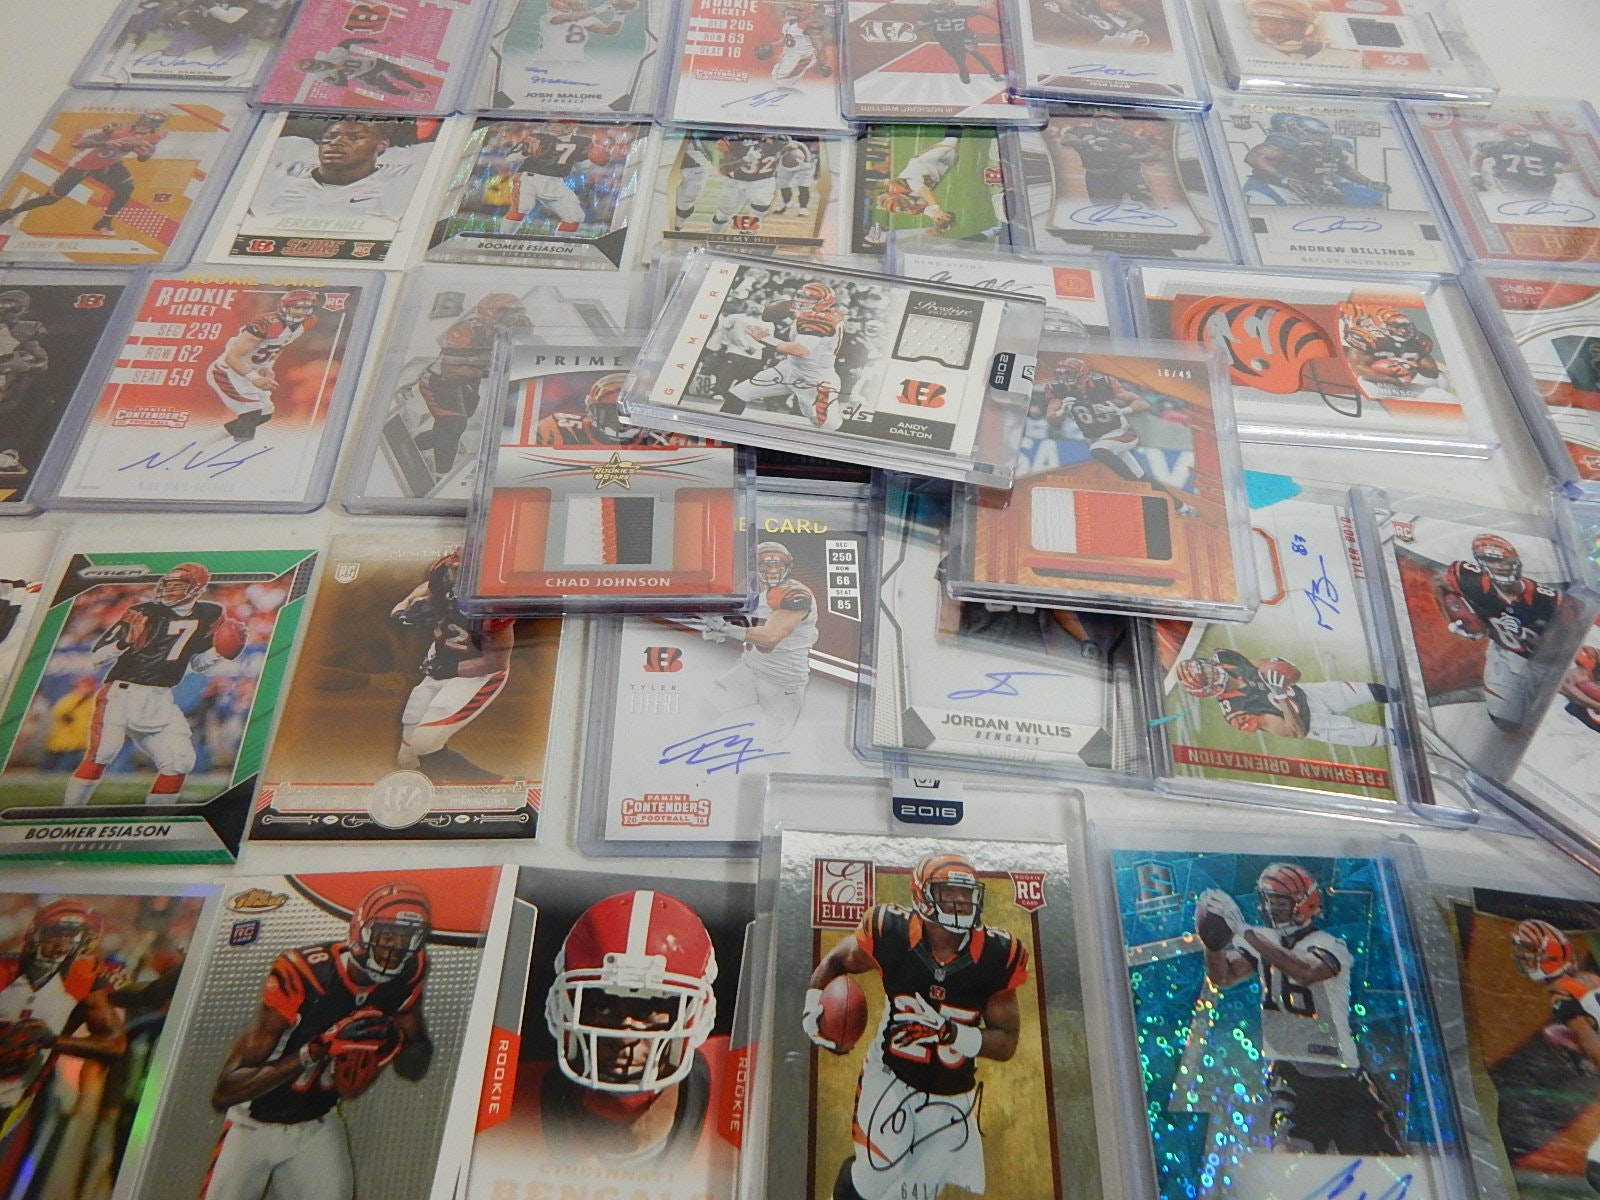 Cincinnati Bengals Card Collection from 2000s